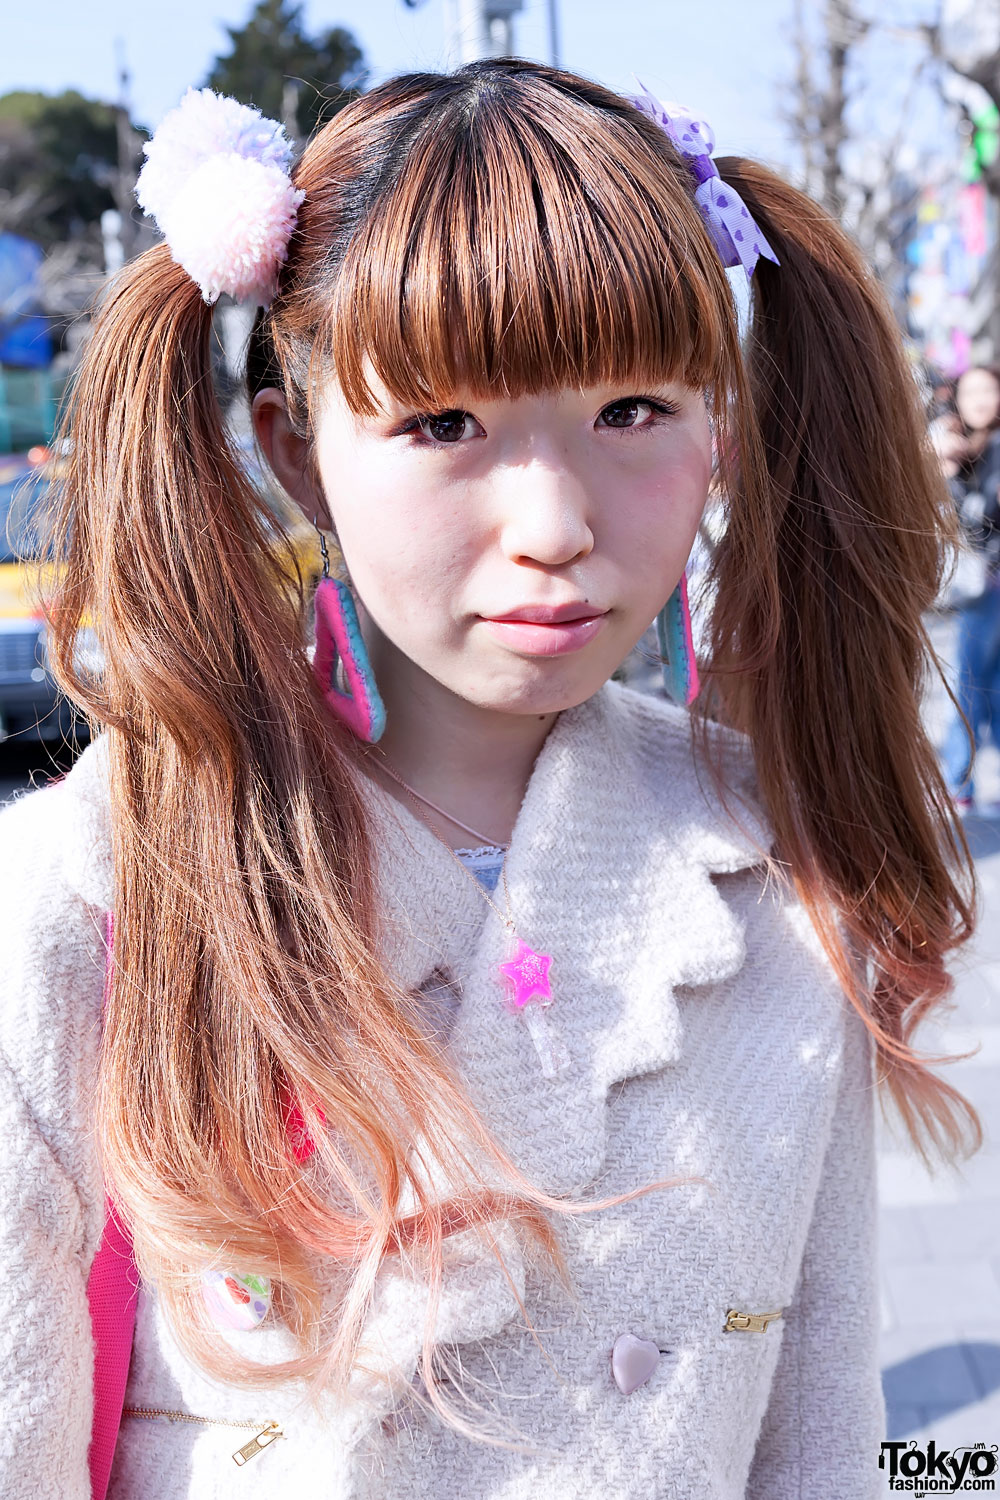 Cute Twintail Hairstyle Amp Hello Kitty Laced Platform